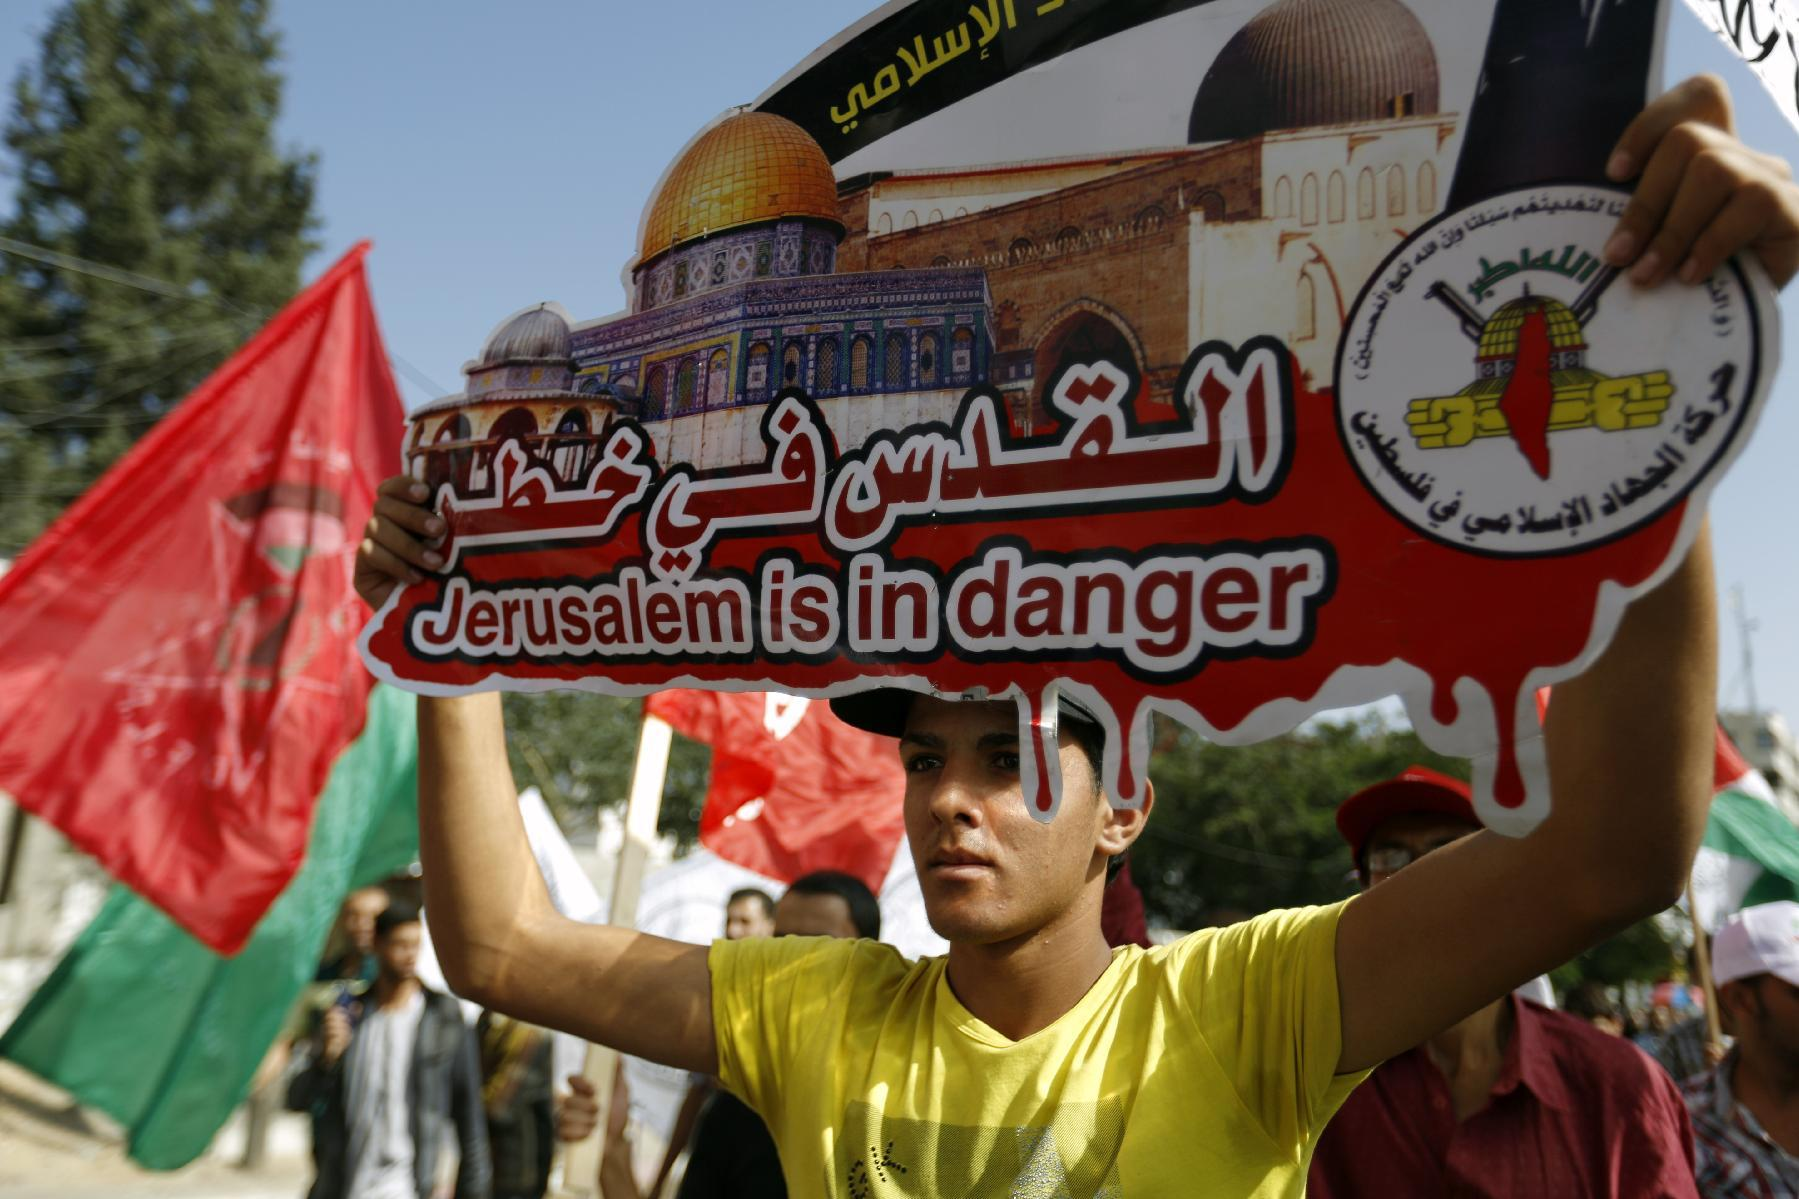 """A Palestinian holds a placard reading """"Jerusalem is in danger"""" during a rally to protest after authorities restricted access to the al-Aqsa mosque compound on October 17, 2014 in Gaza City (AFP Photo/Mohammed Abed)"""